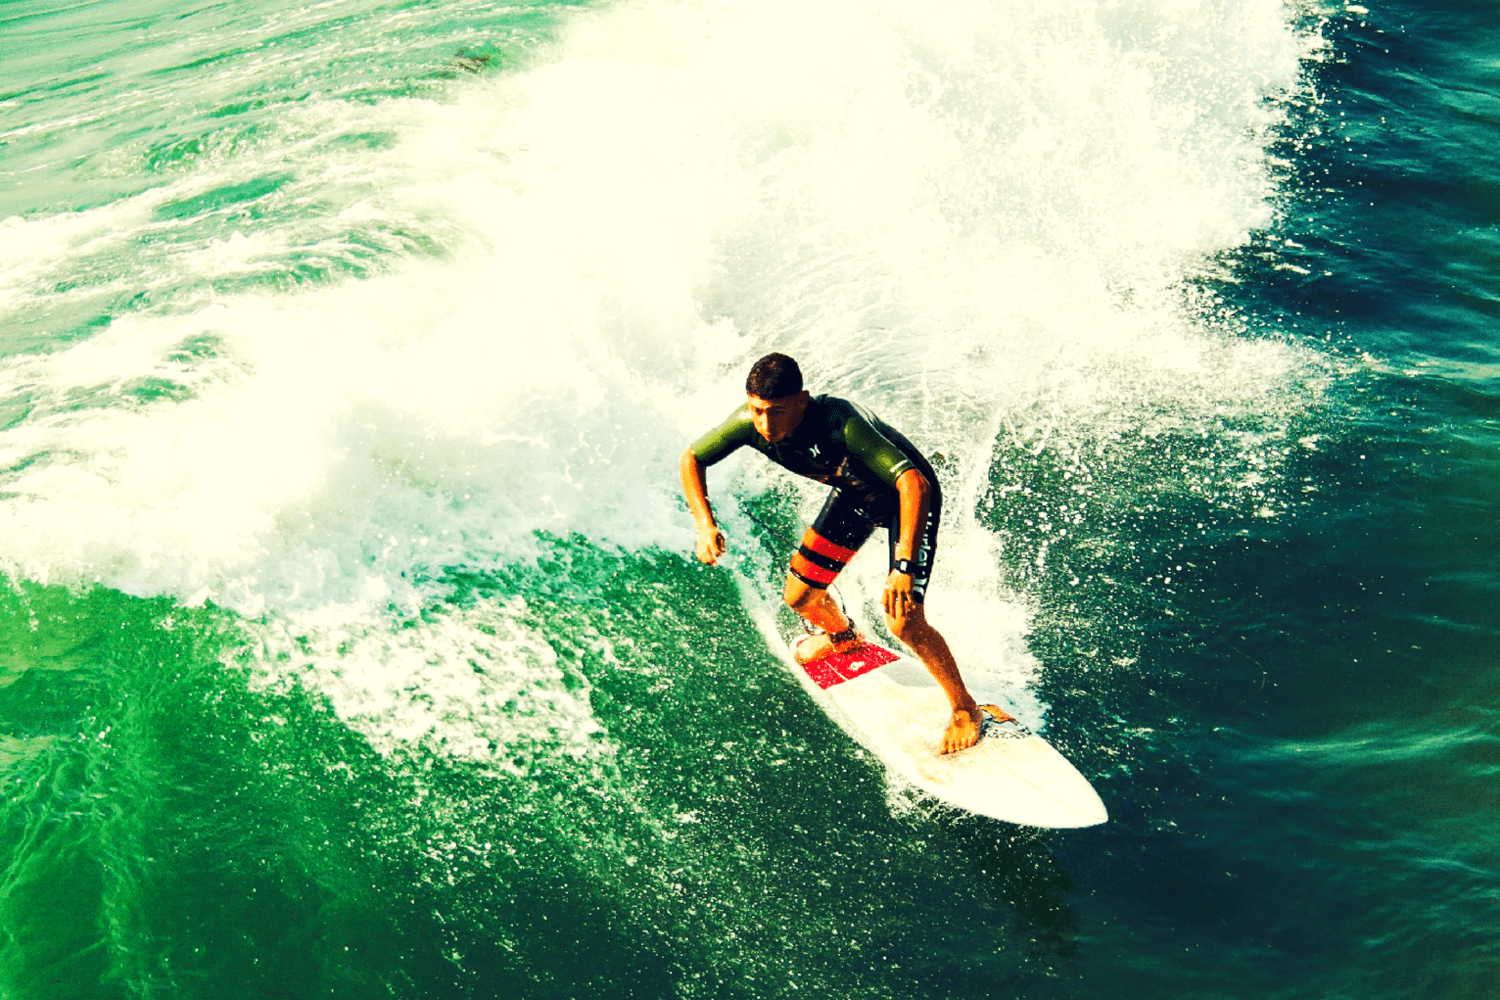 surfing, waves, miracle, passion, risk